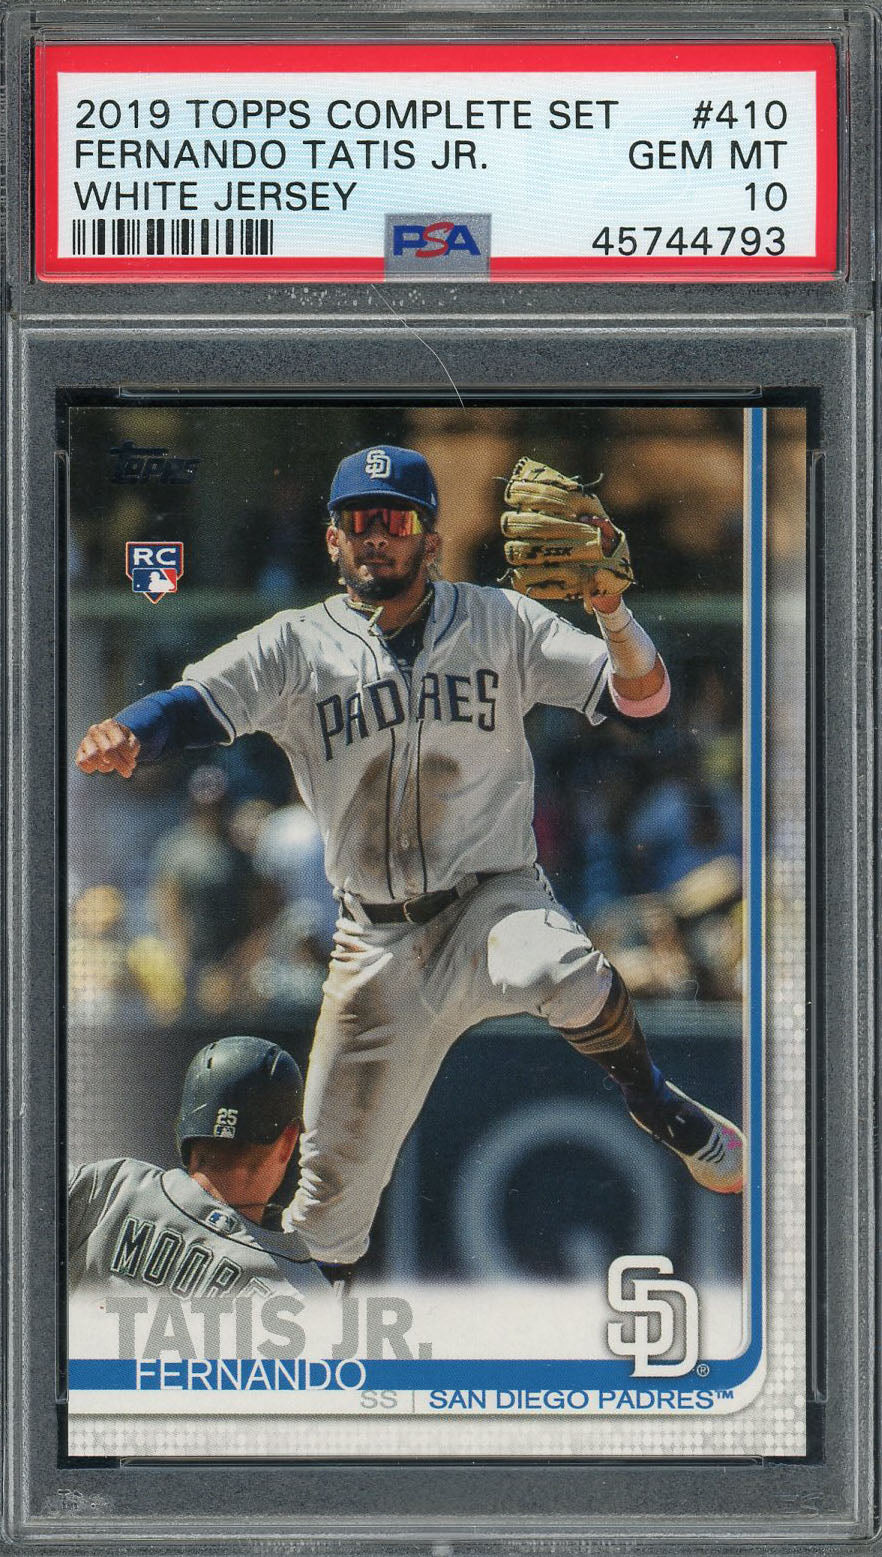 Fernando Tatis Jr San Diego Padres 2019 Topps Complete Baseball Rookie Card RC #410 Graded PSA 10 Gem Mint-Powers Sports Memorabilia